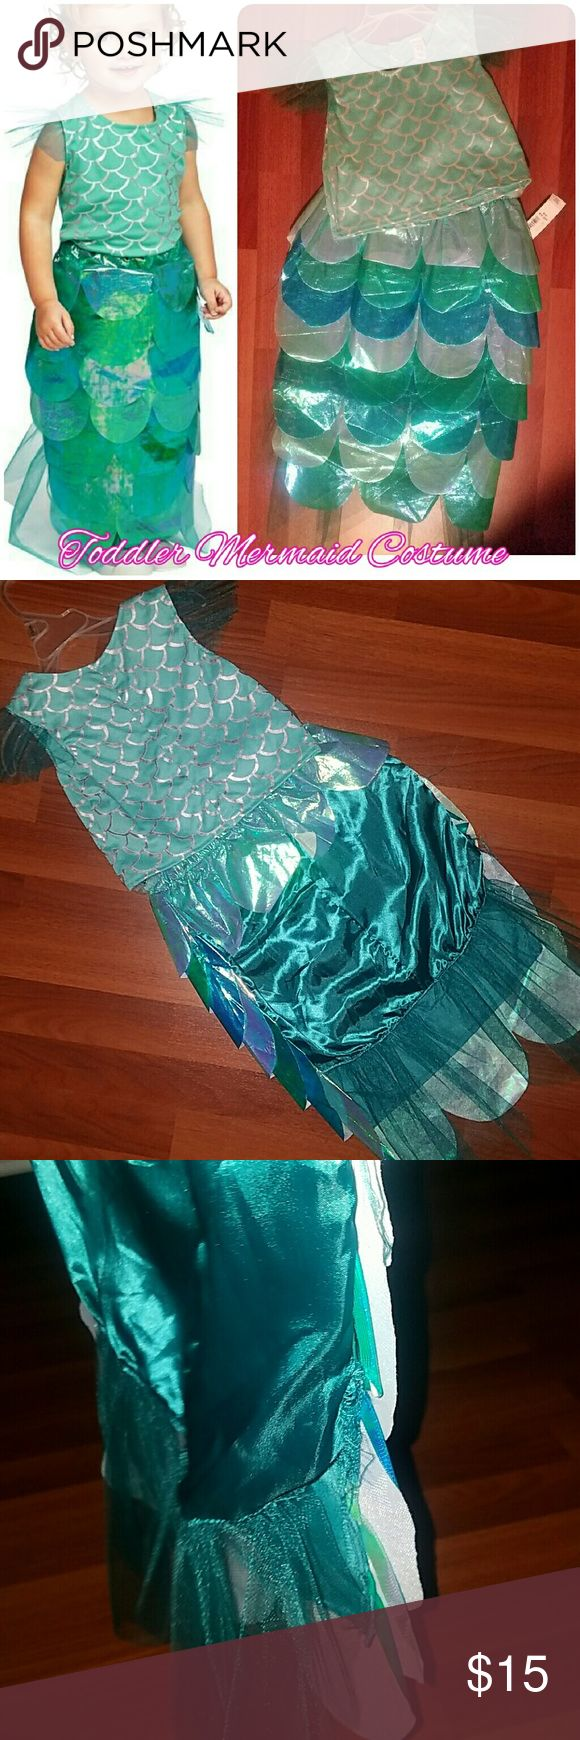 Old Navy Toddler Mermaid Costume NEW. Tag attached to skirt piece.  Didn't notice rip on side of skirt when bought- but easy fix to sew up  ♡ Elastic garter at waist Old Navy Costumes Halloween